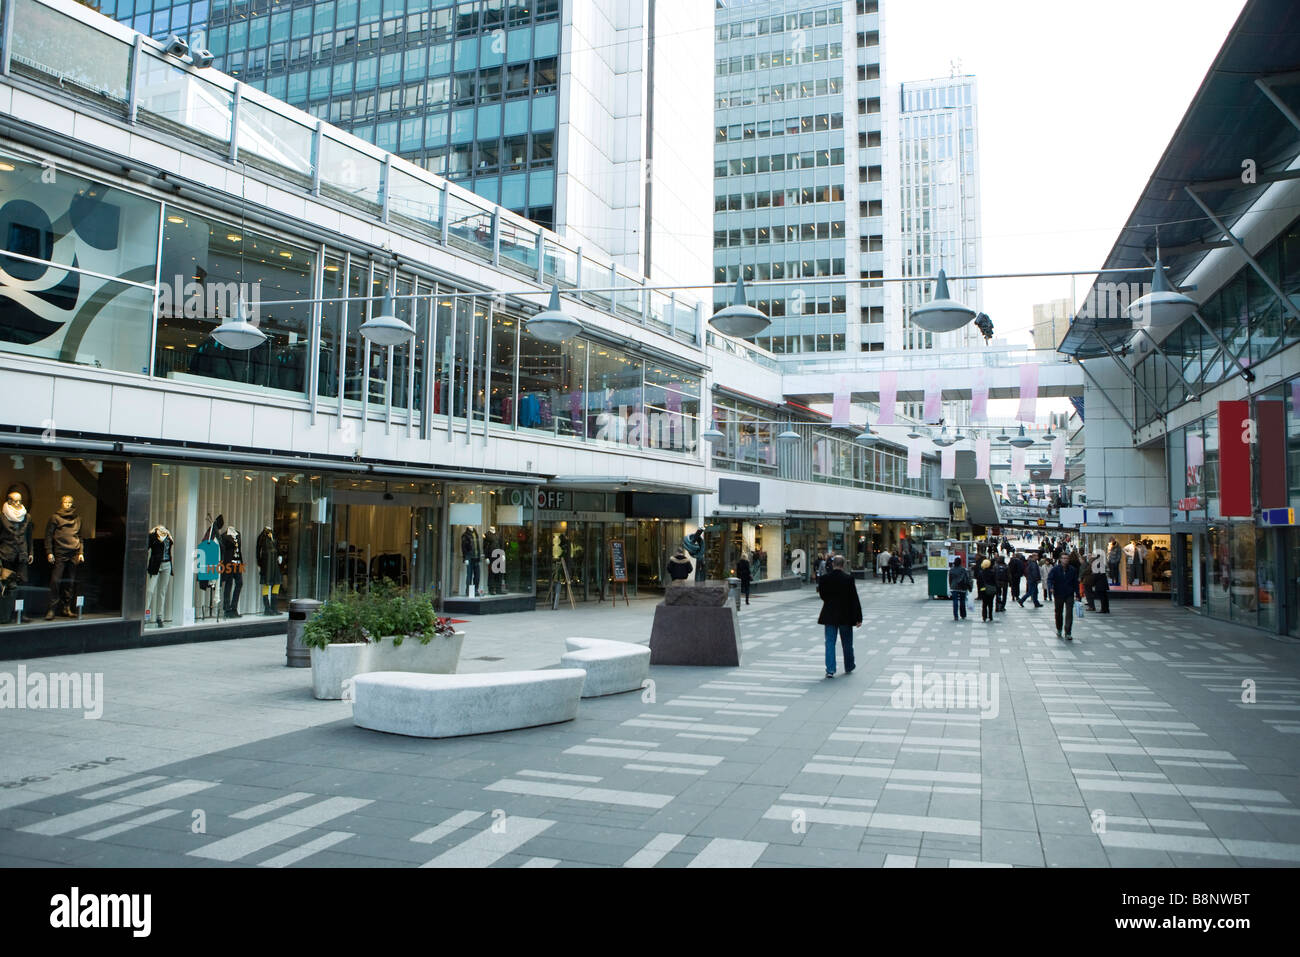 Sweden, Stockholm, upscale outdoor mall - Stock Image